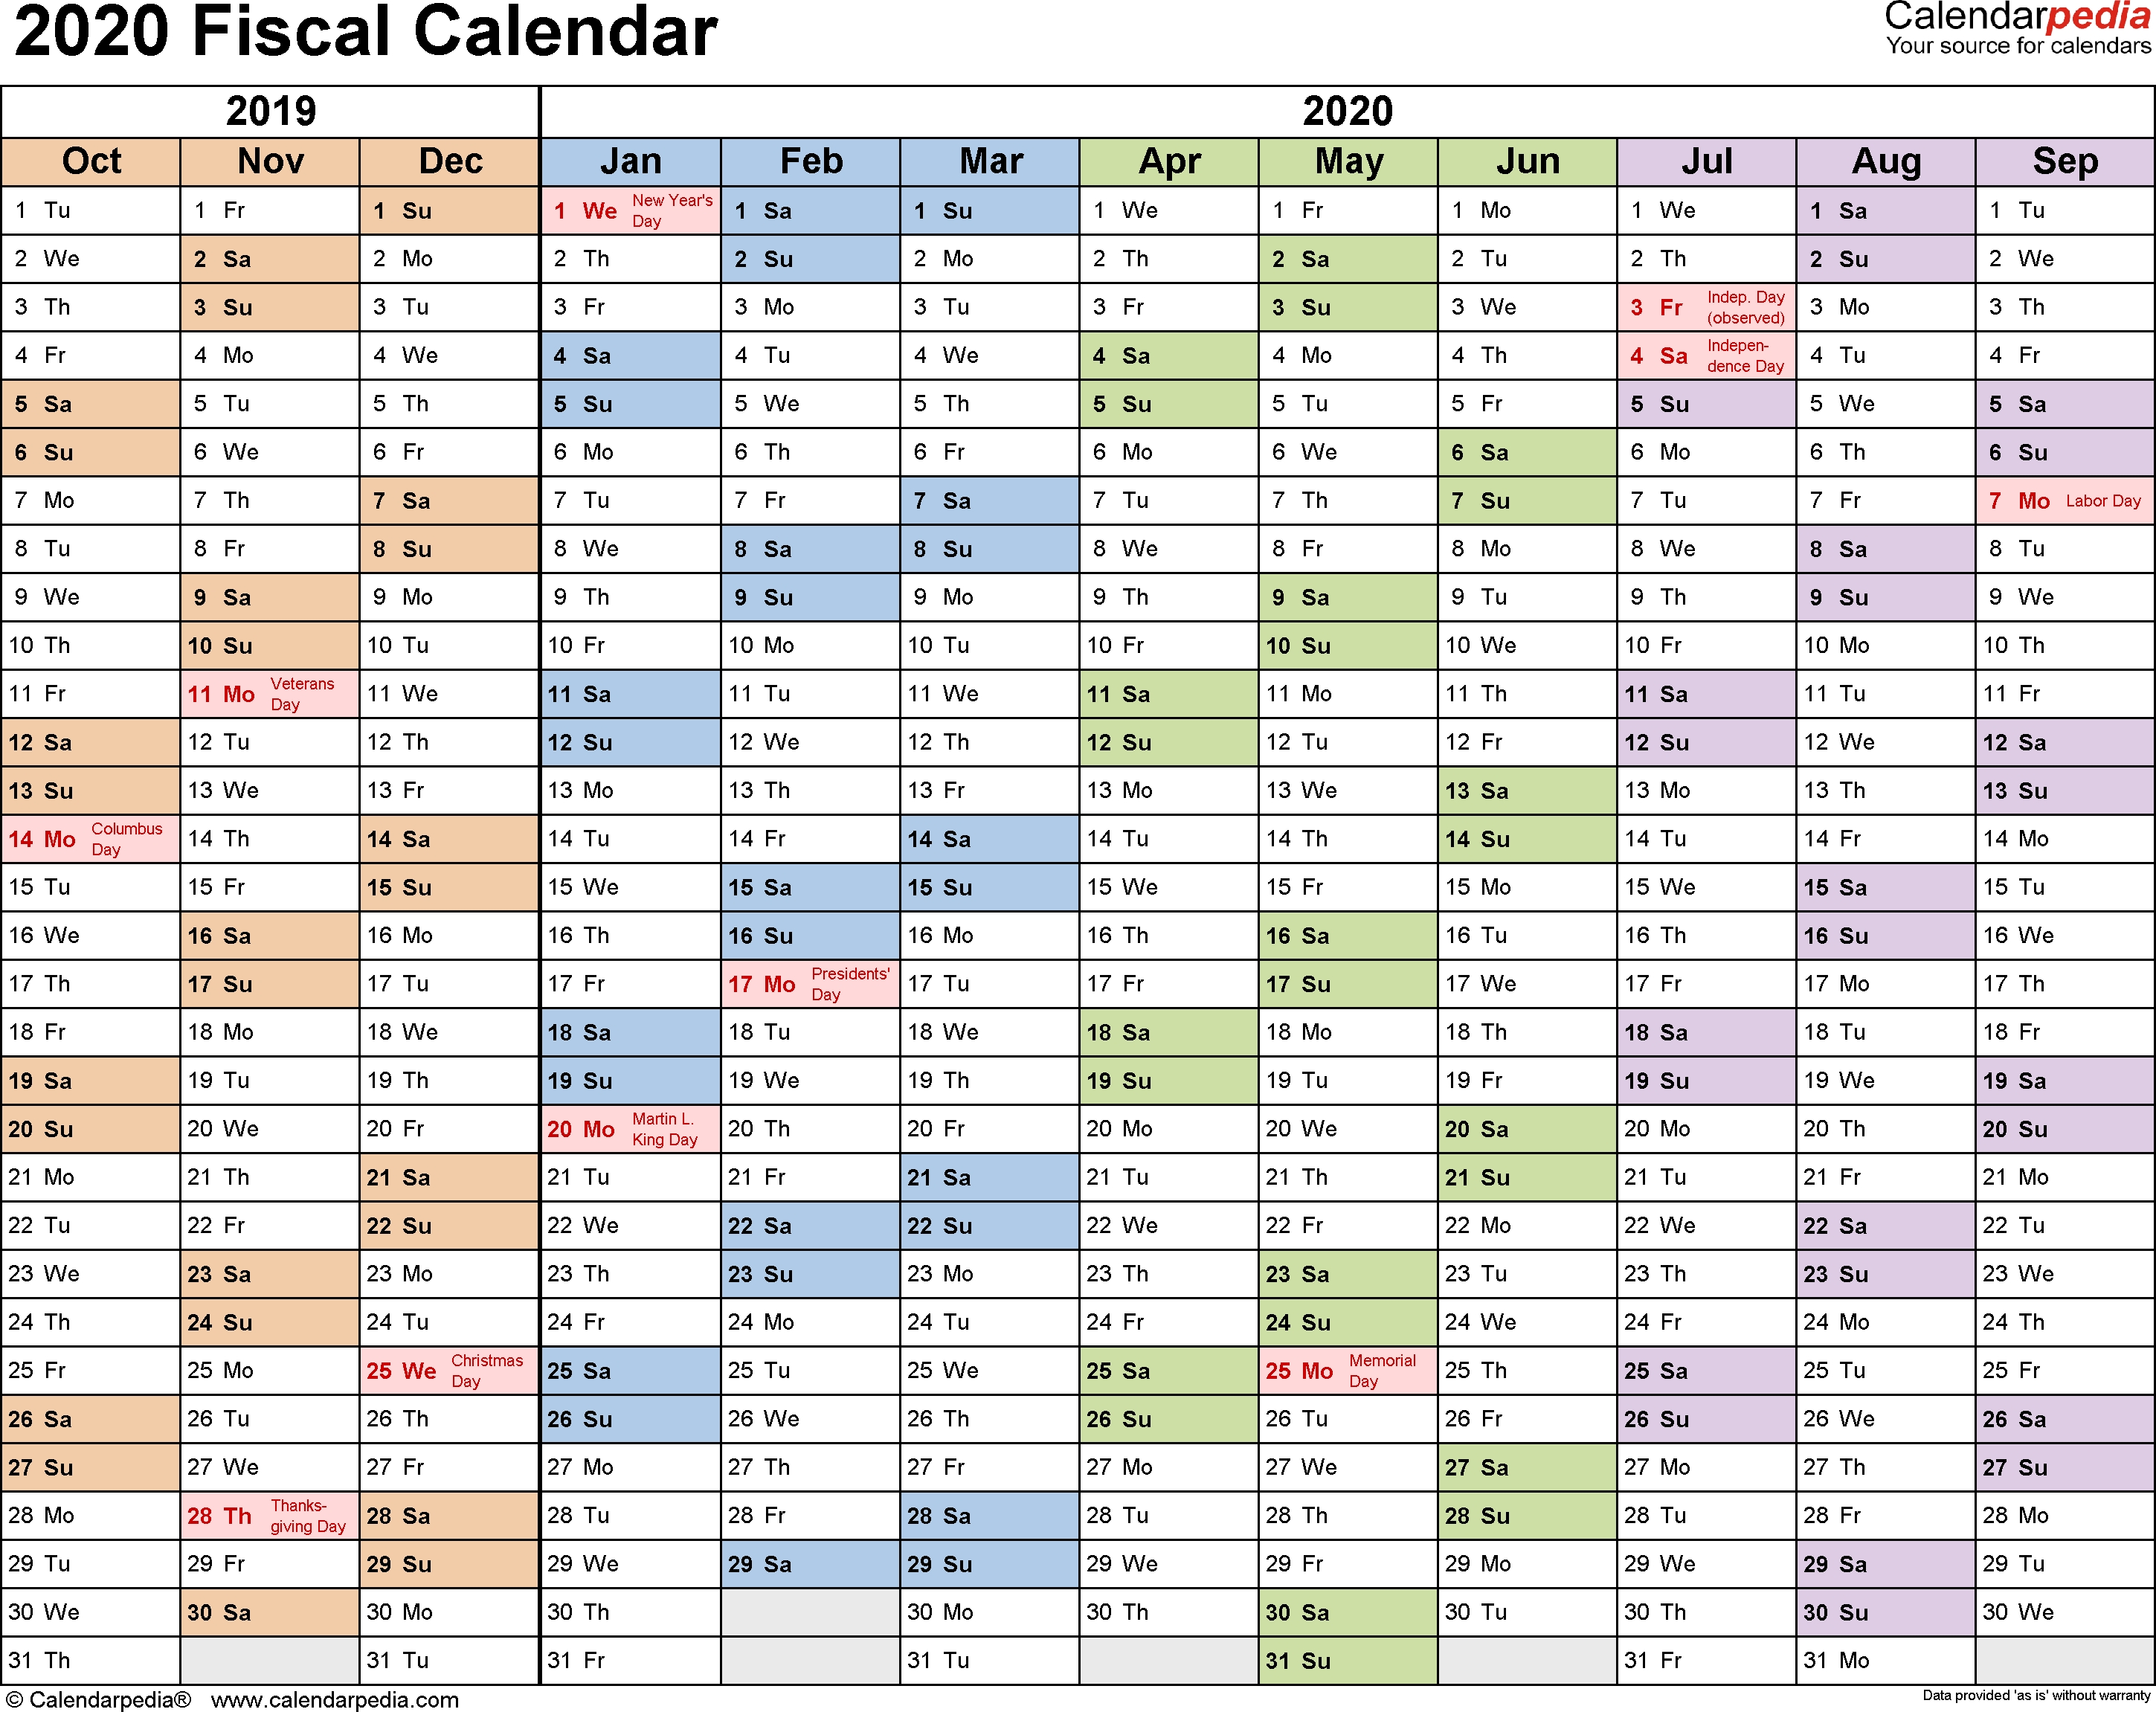 Fiscal Calendars 2020 As Free Printable Excel Templates-4 Month Excel Calendar 2020 Template